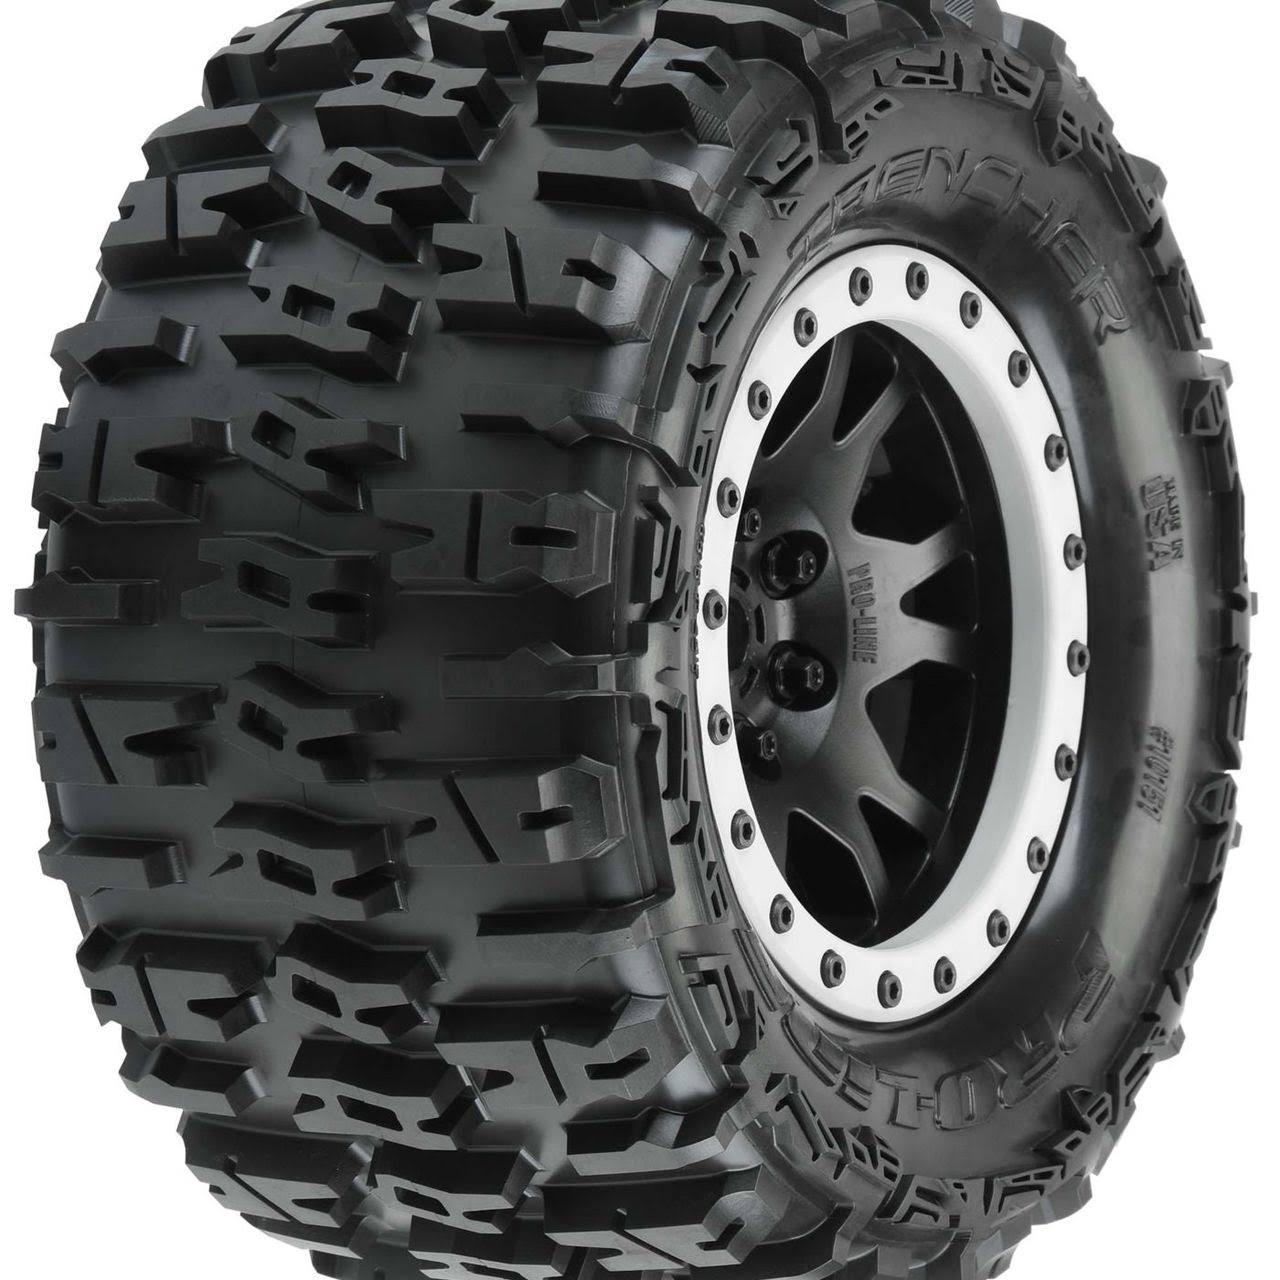 Proline Trencher Pro Loc All Terrain Tires - Pack of 2, 4.3""